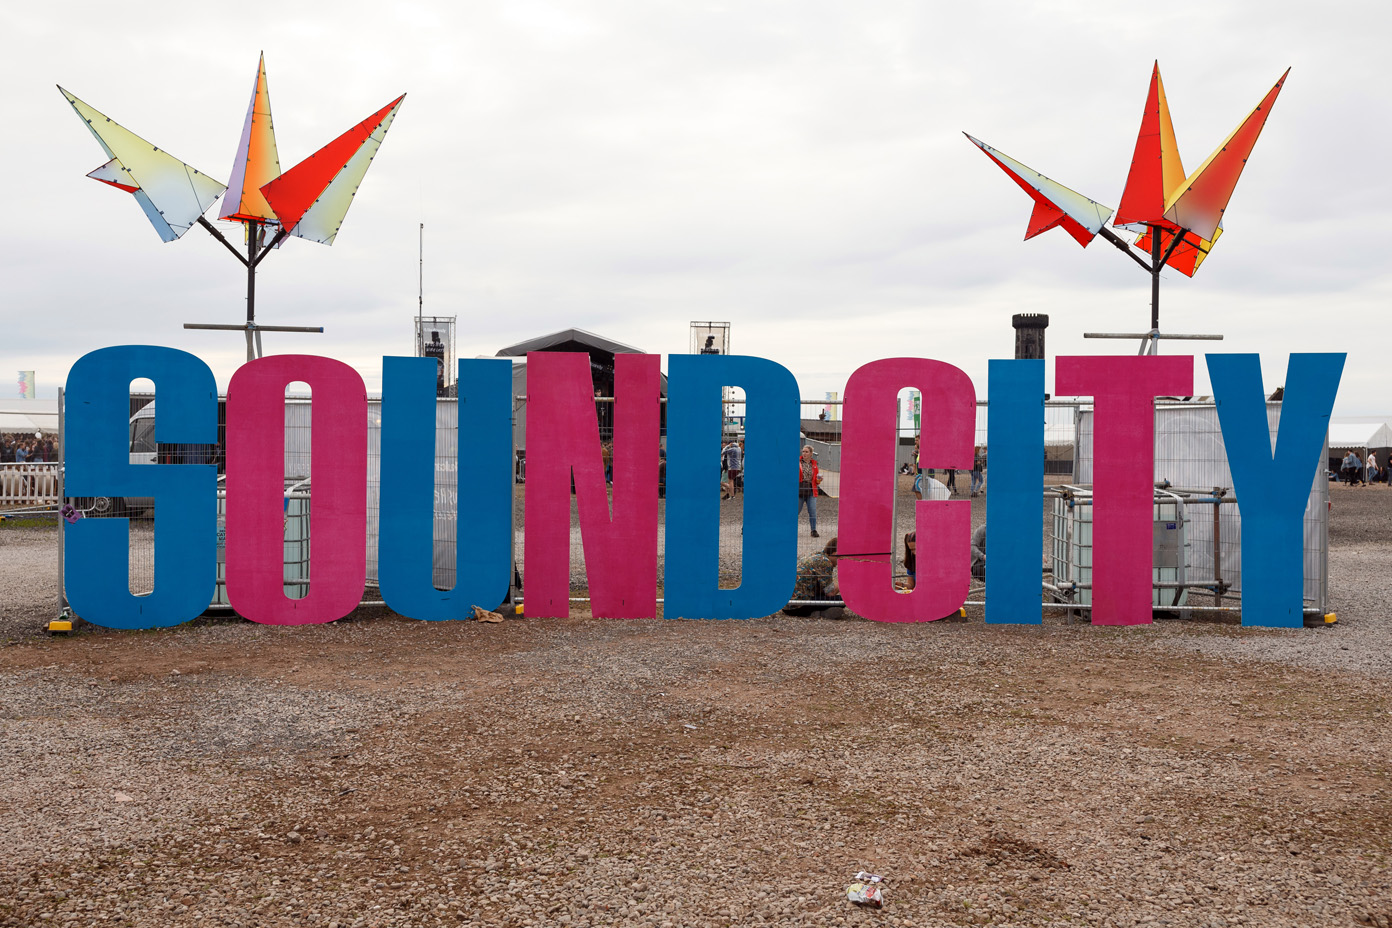 The new festival site of Liverpool Sound City featured many changes from 2016. Photo: Katy Blackwood